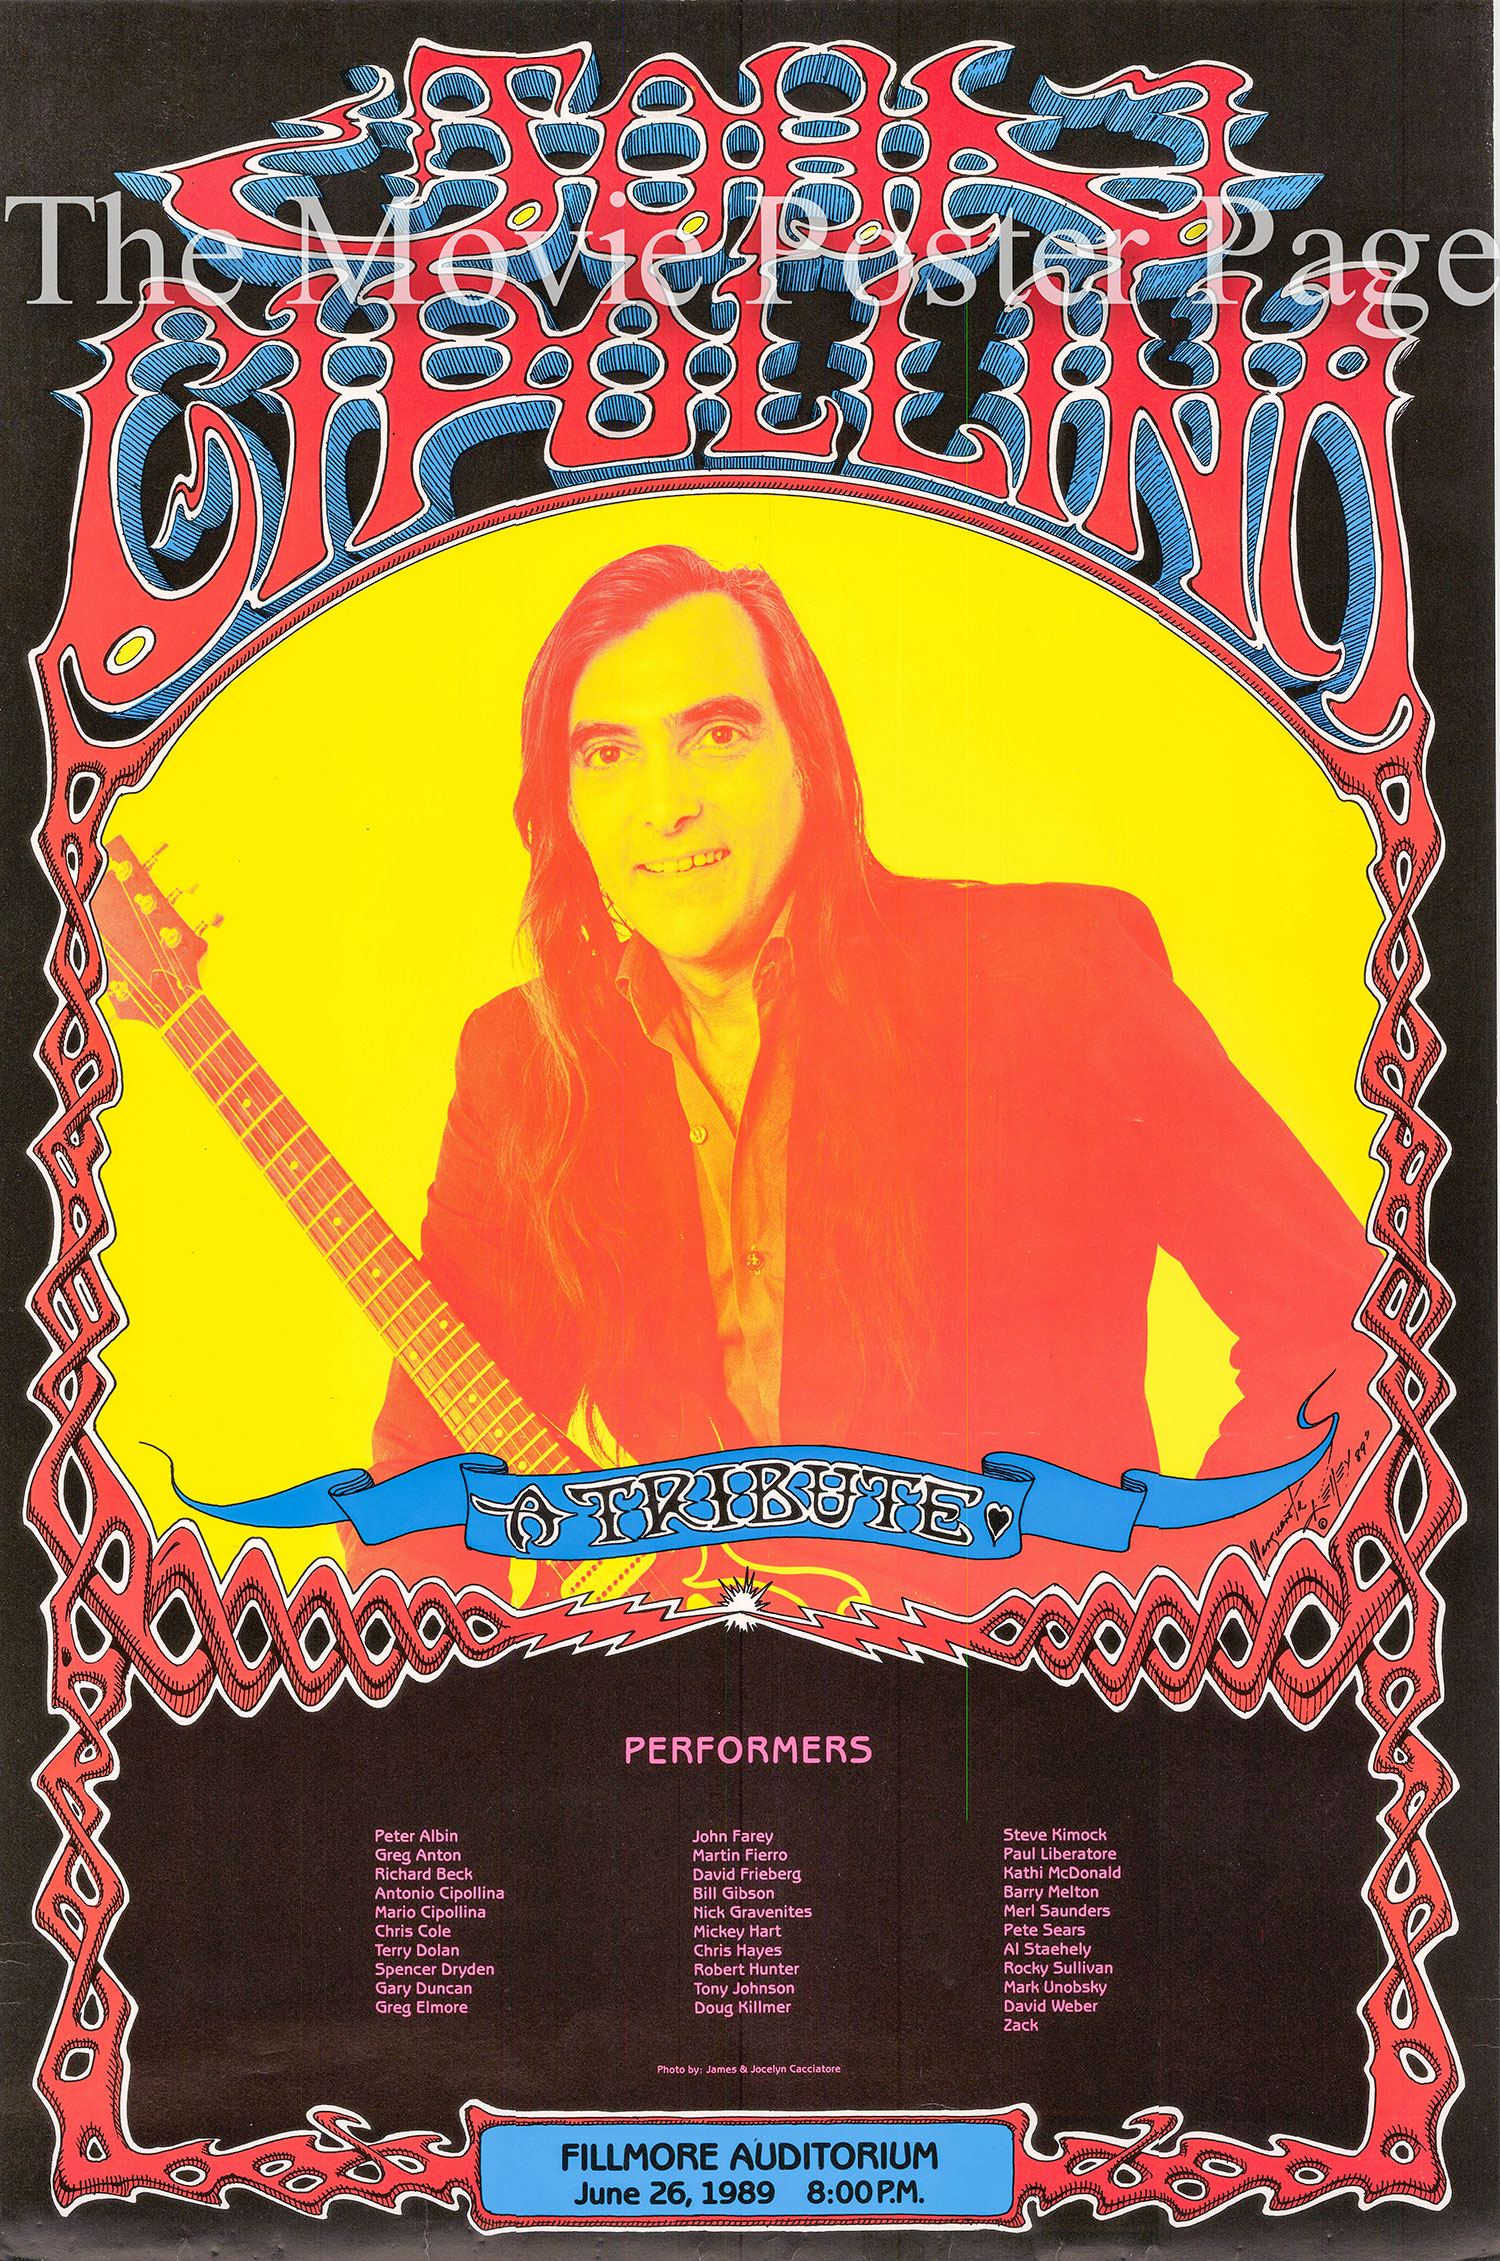 Pictured is a promotional poster for the June 26 1989 John Cippolina Tribute Concert at the Fillmore Auditorium.